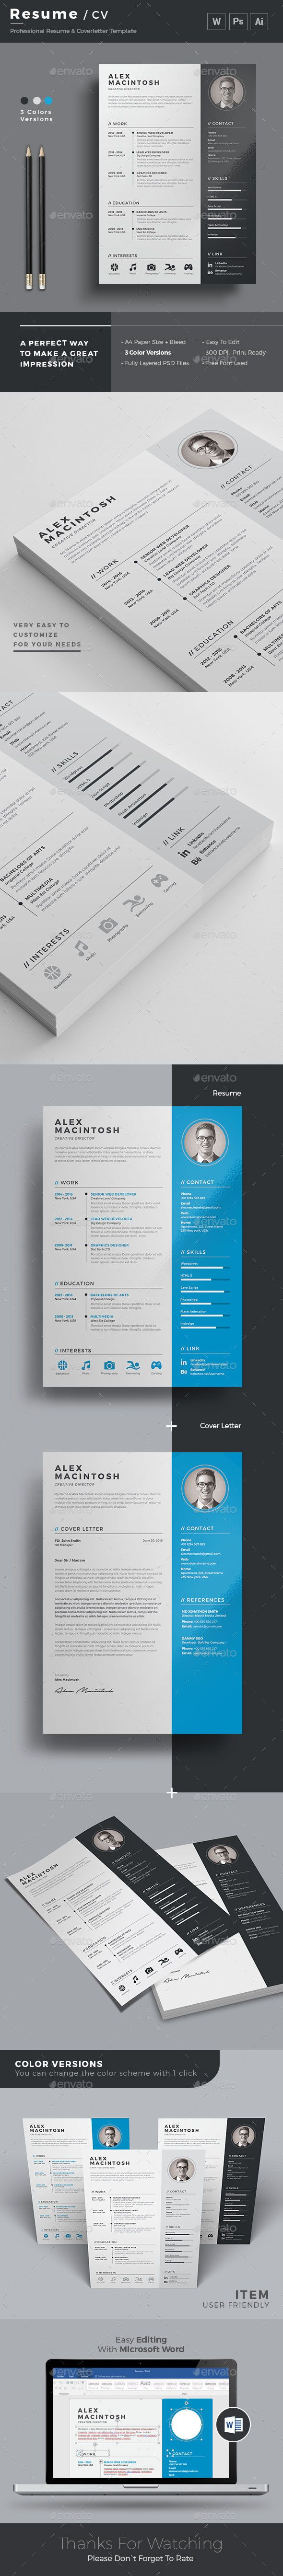 resume cover letter cover letter template and letter templates resume word template elegant page designs are easy to use and customize so you can quickly tailor make your resume for any opportunity and help you to get